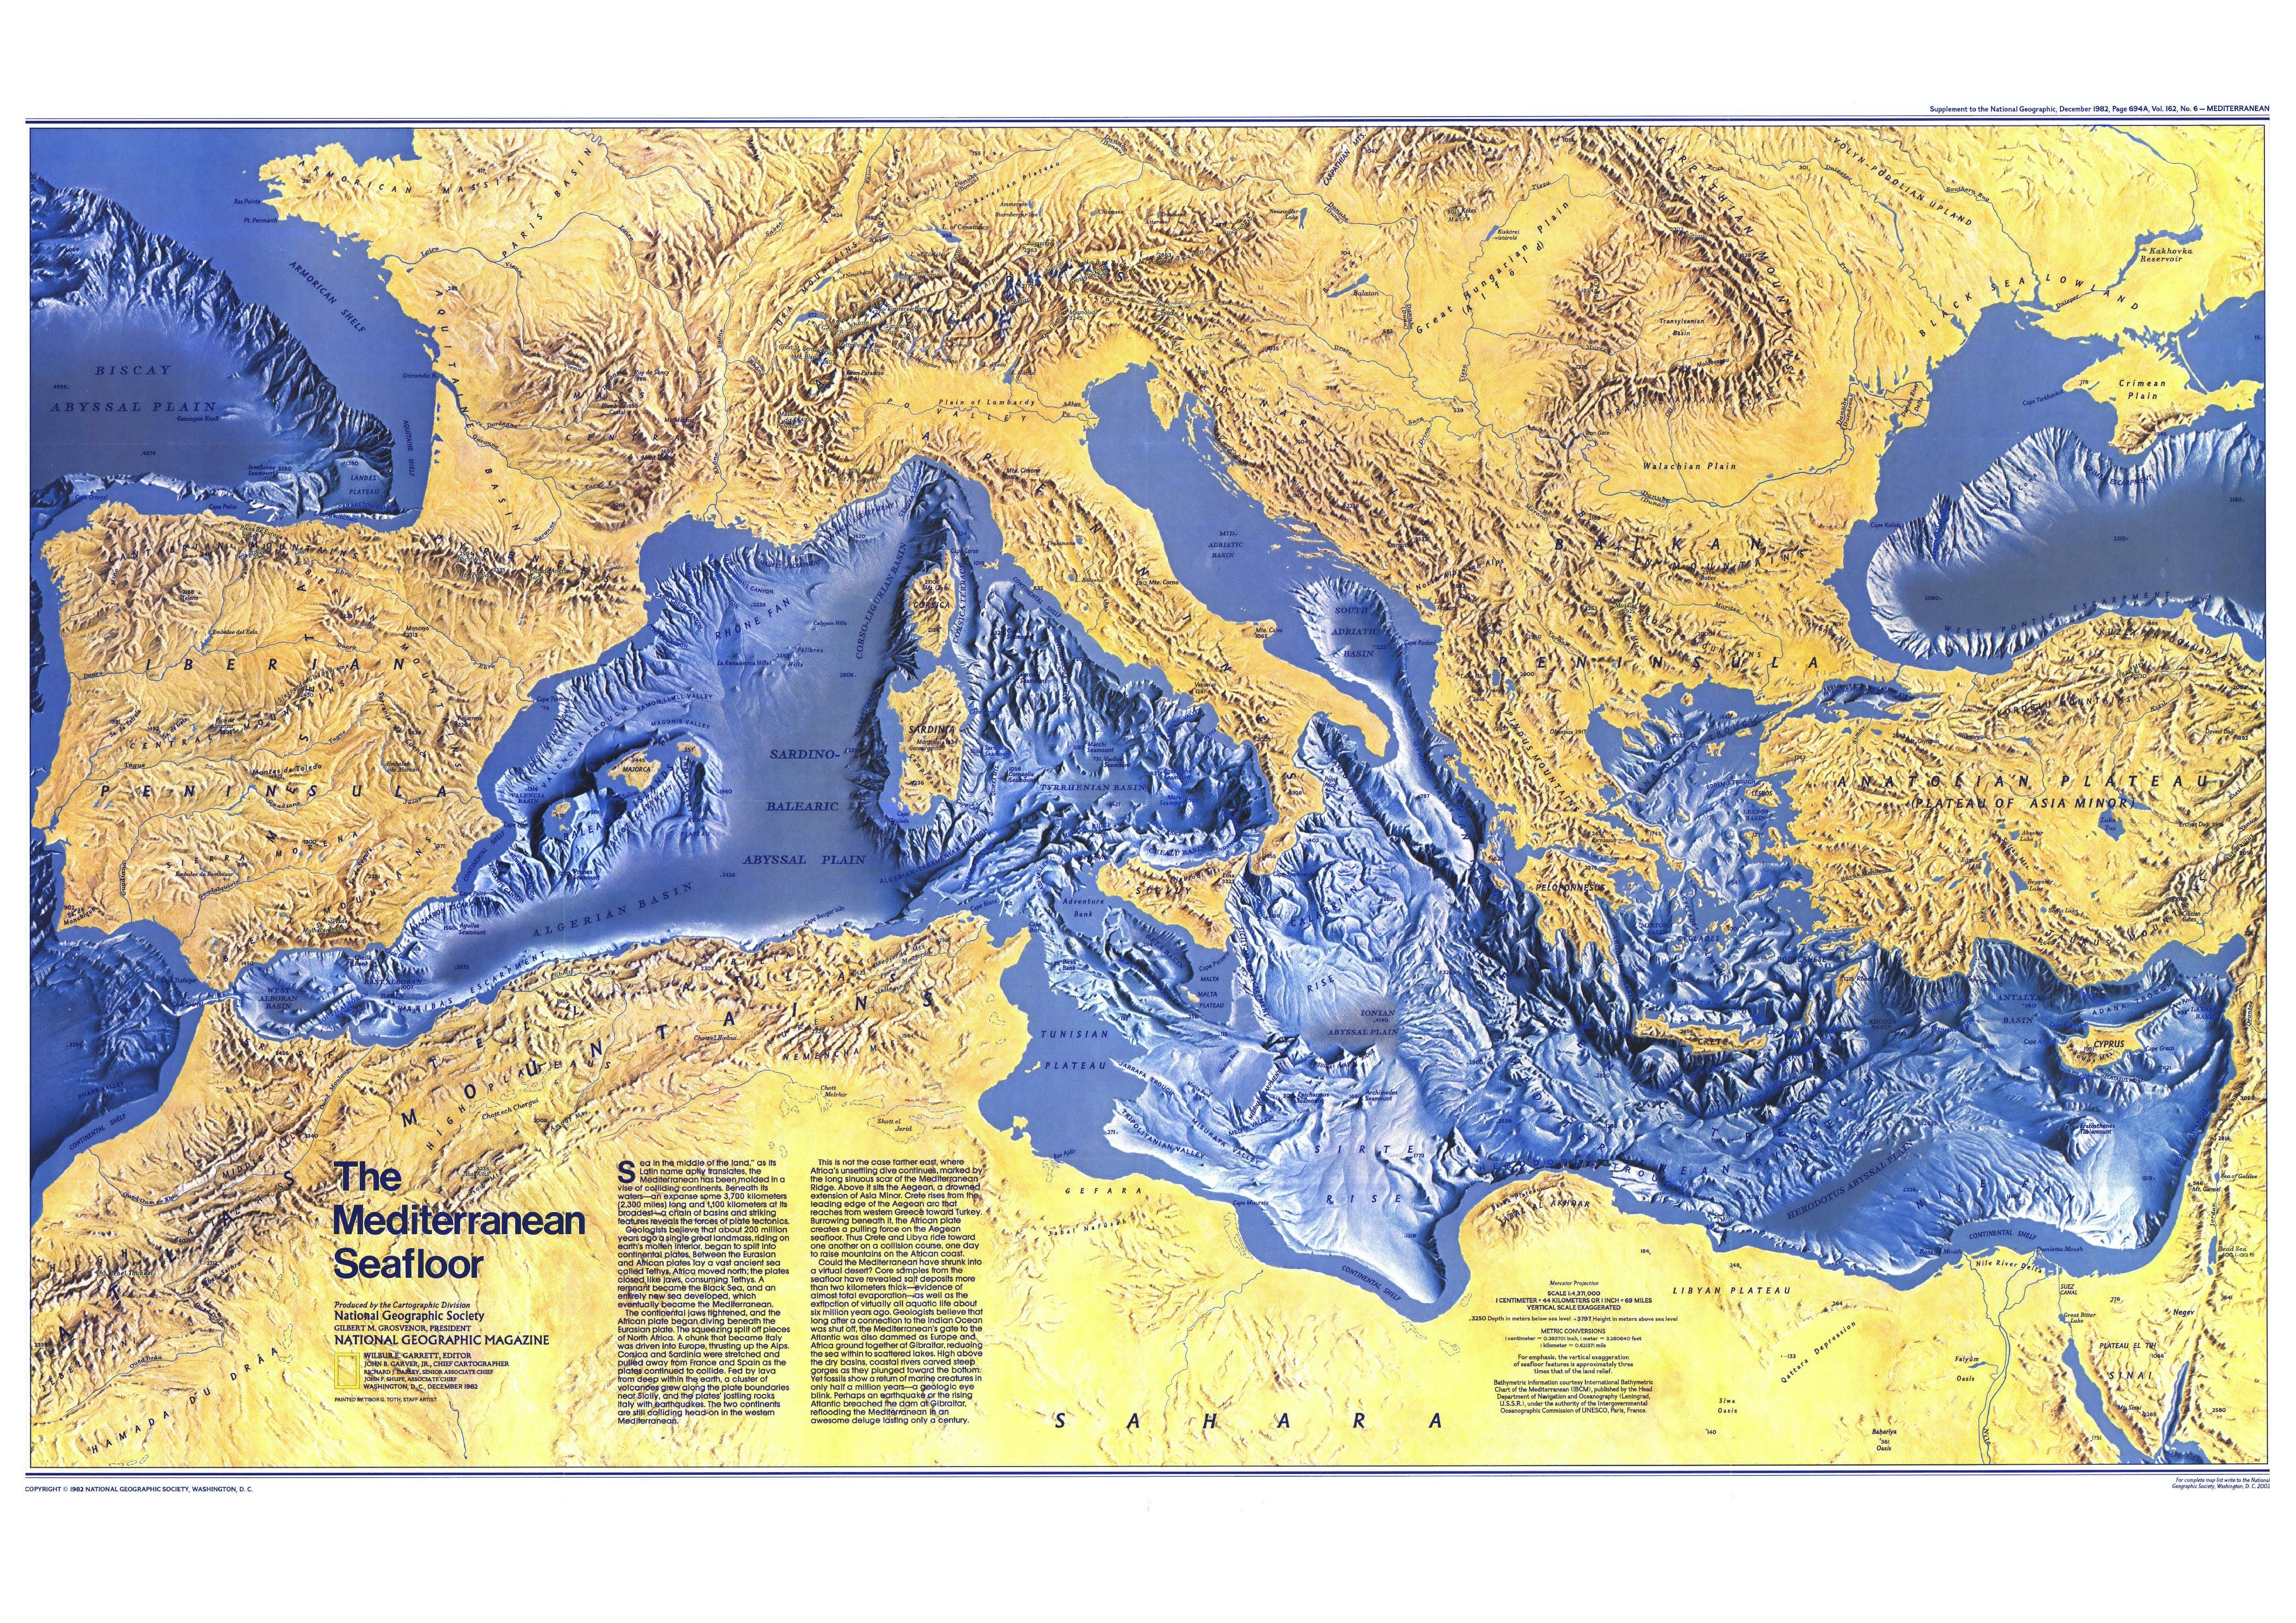 Httpmaroonbeardwp contentuploads201209the mediterranean items similar to the mediterranean seafloor antique world maps old world map illustration digital image ancient maps 32 on etsy gumiabroncs Image collections